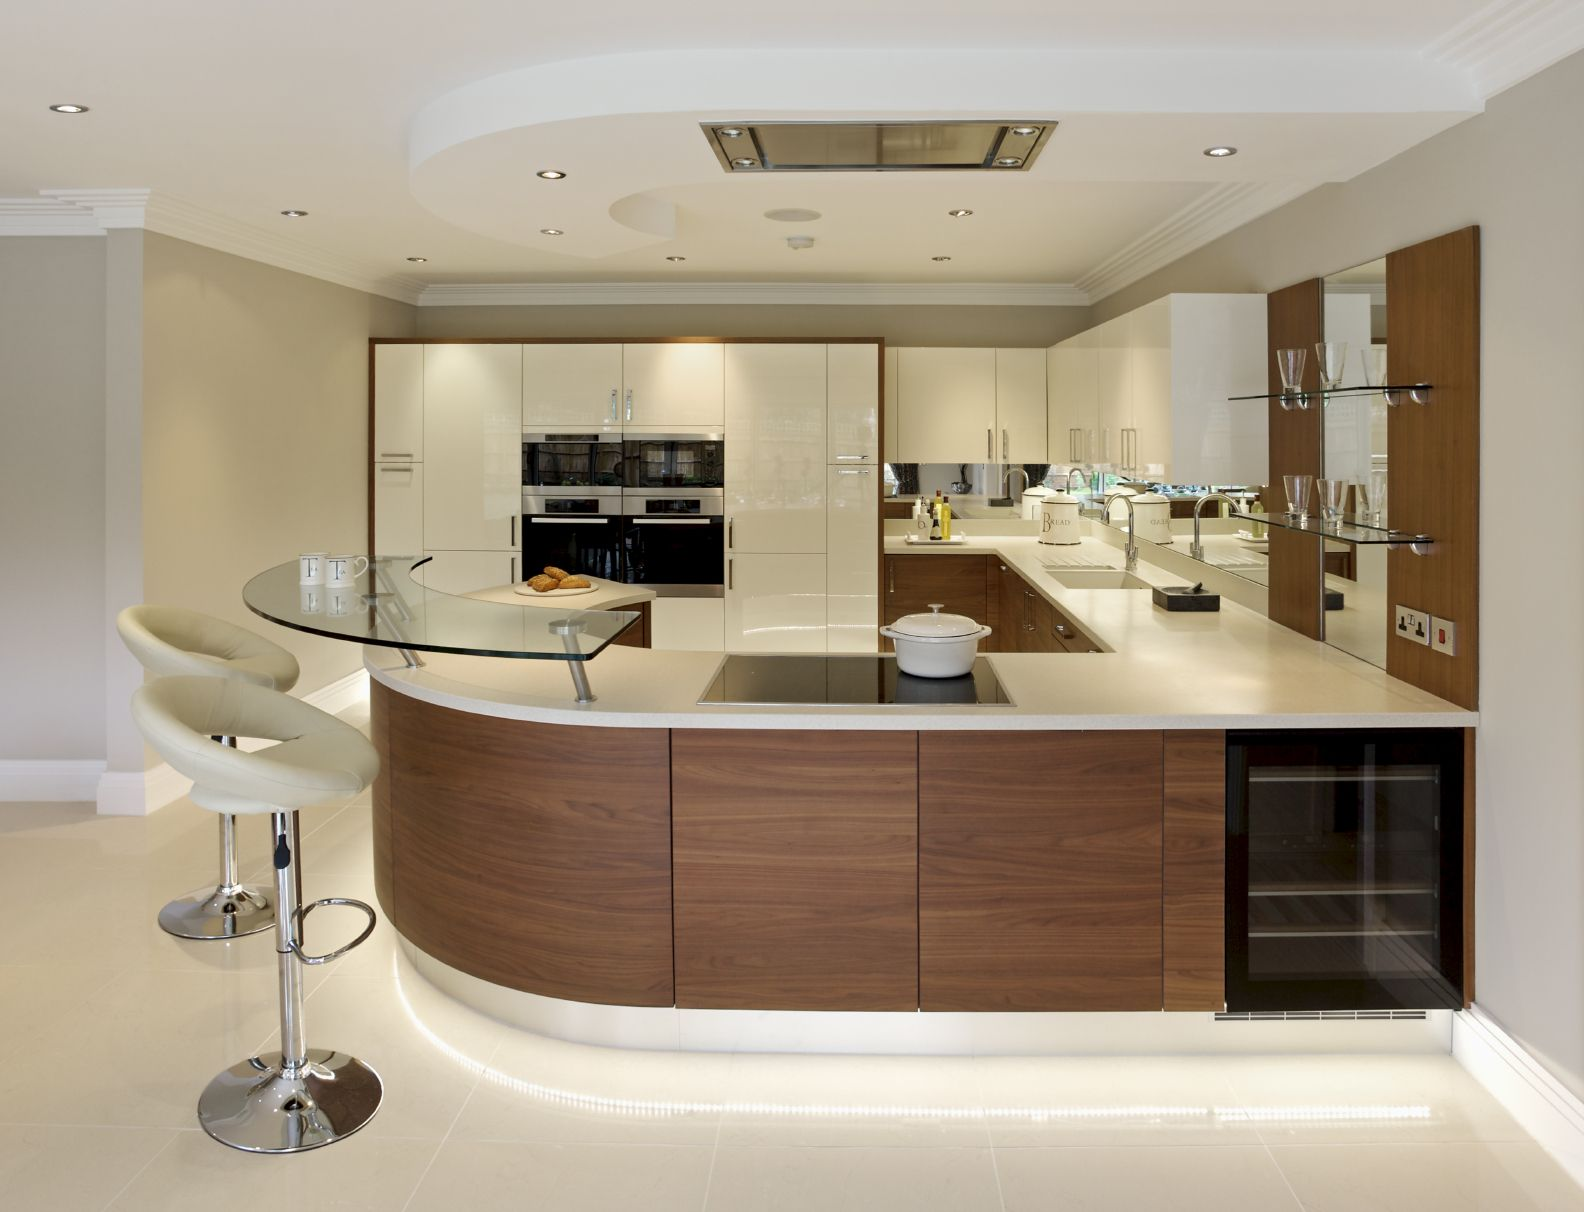 Amazing Contemporary Kitchen By Motivo Interiors